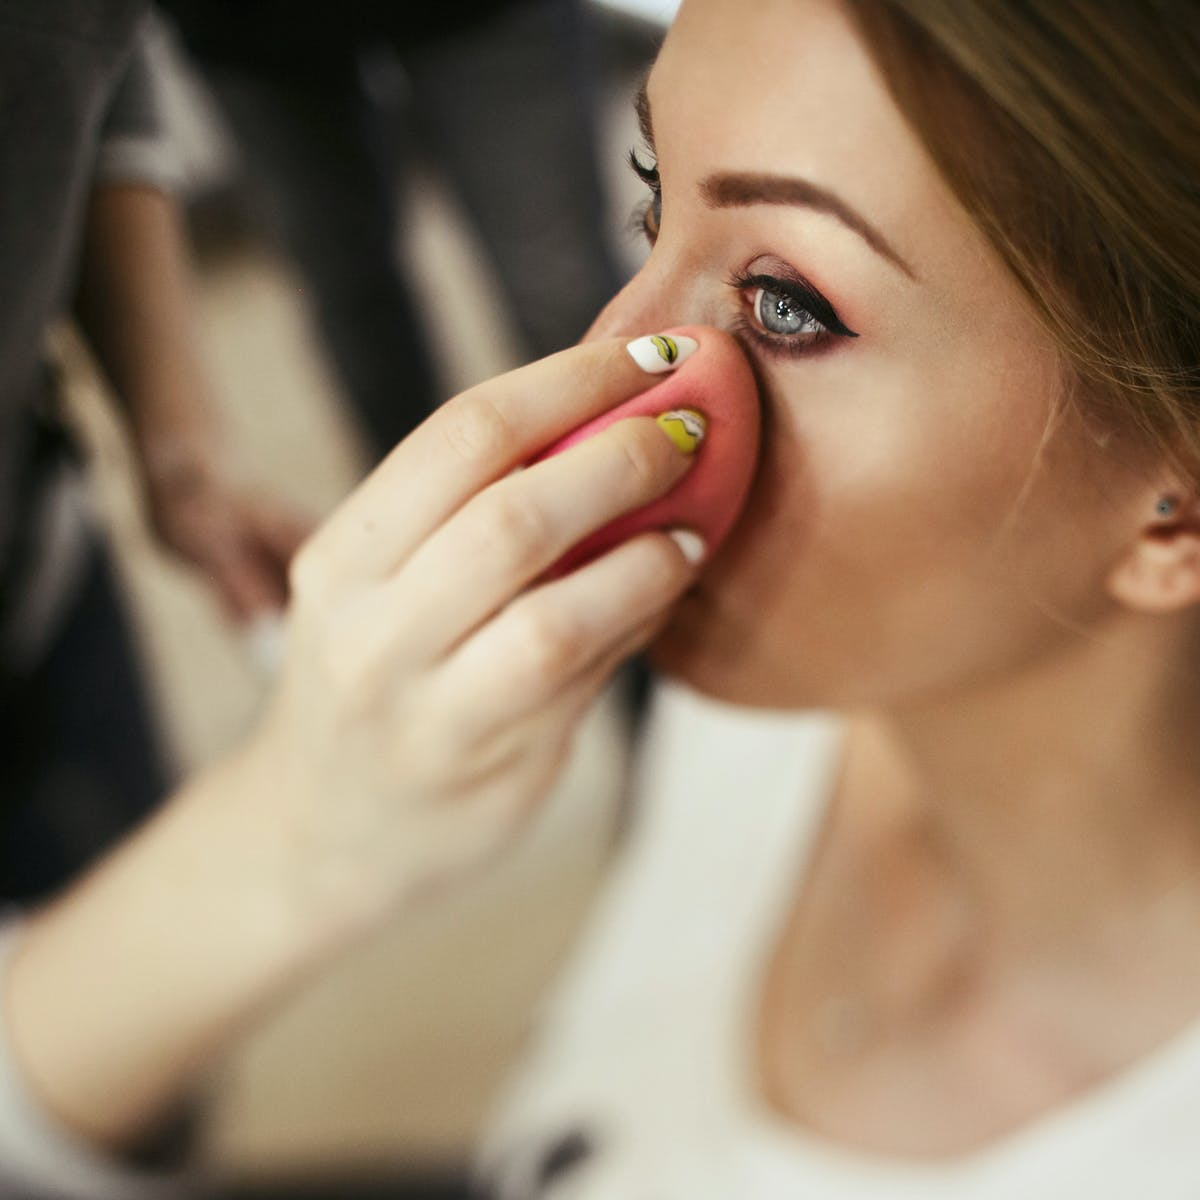 Deadly Bugs Found In 9 Out Of 10 Makeup